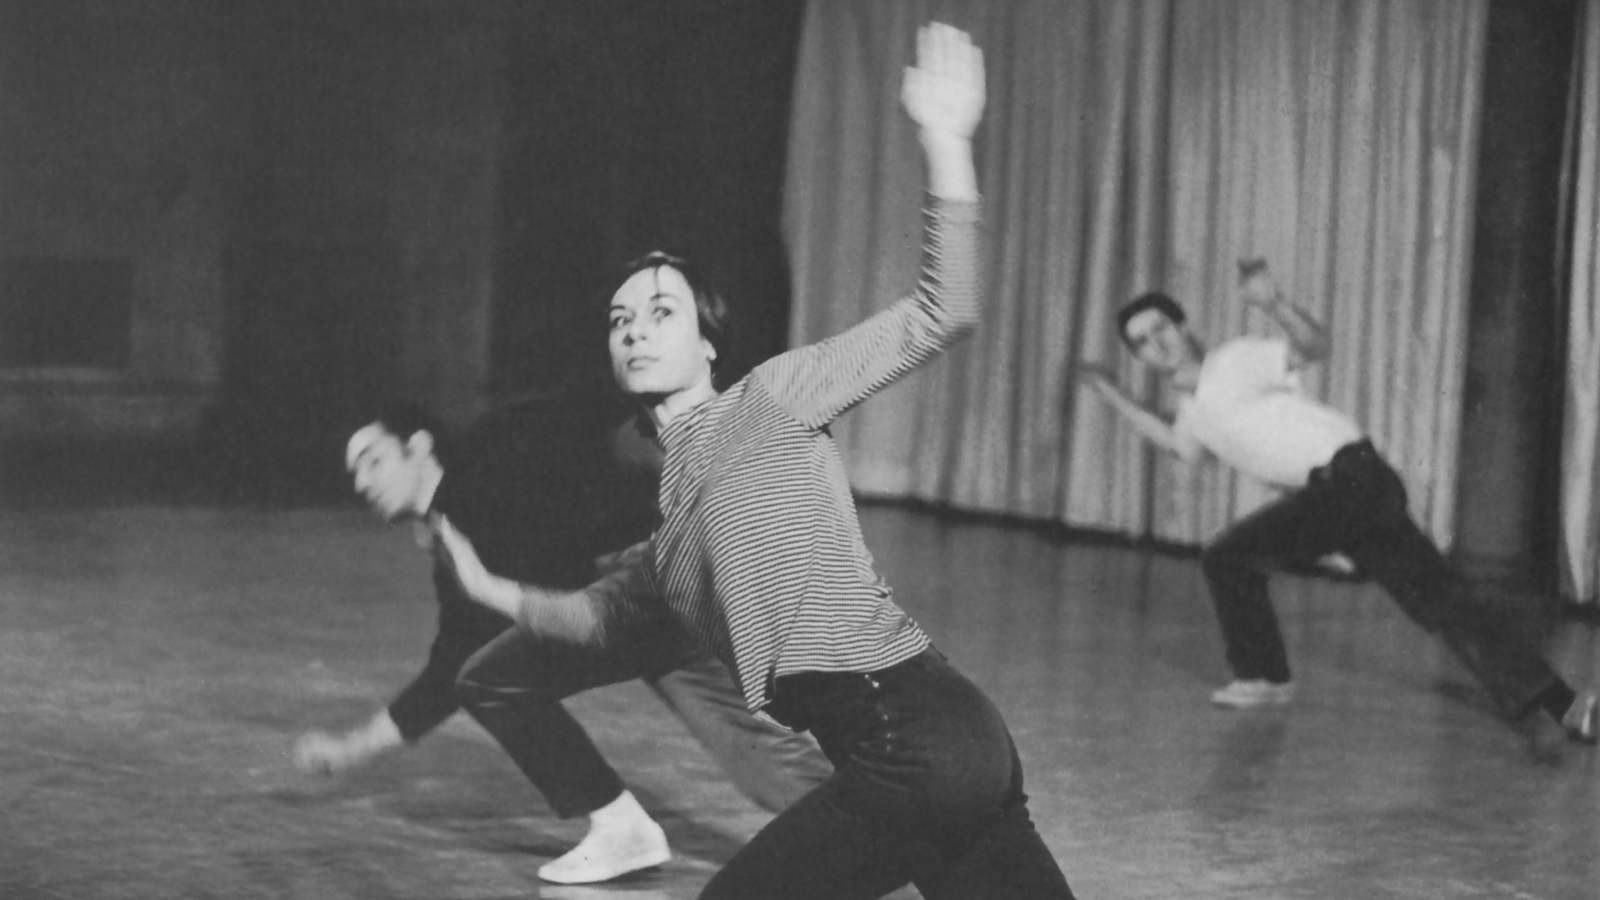 Feelings Are Facts - The only documentary to focus solely on the life and career of Yvonne Rainer, Feelings Are Facts: The Life of Yvonne Rainer tells the captivating story of one of America's most important artists.